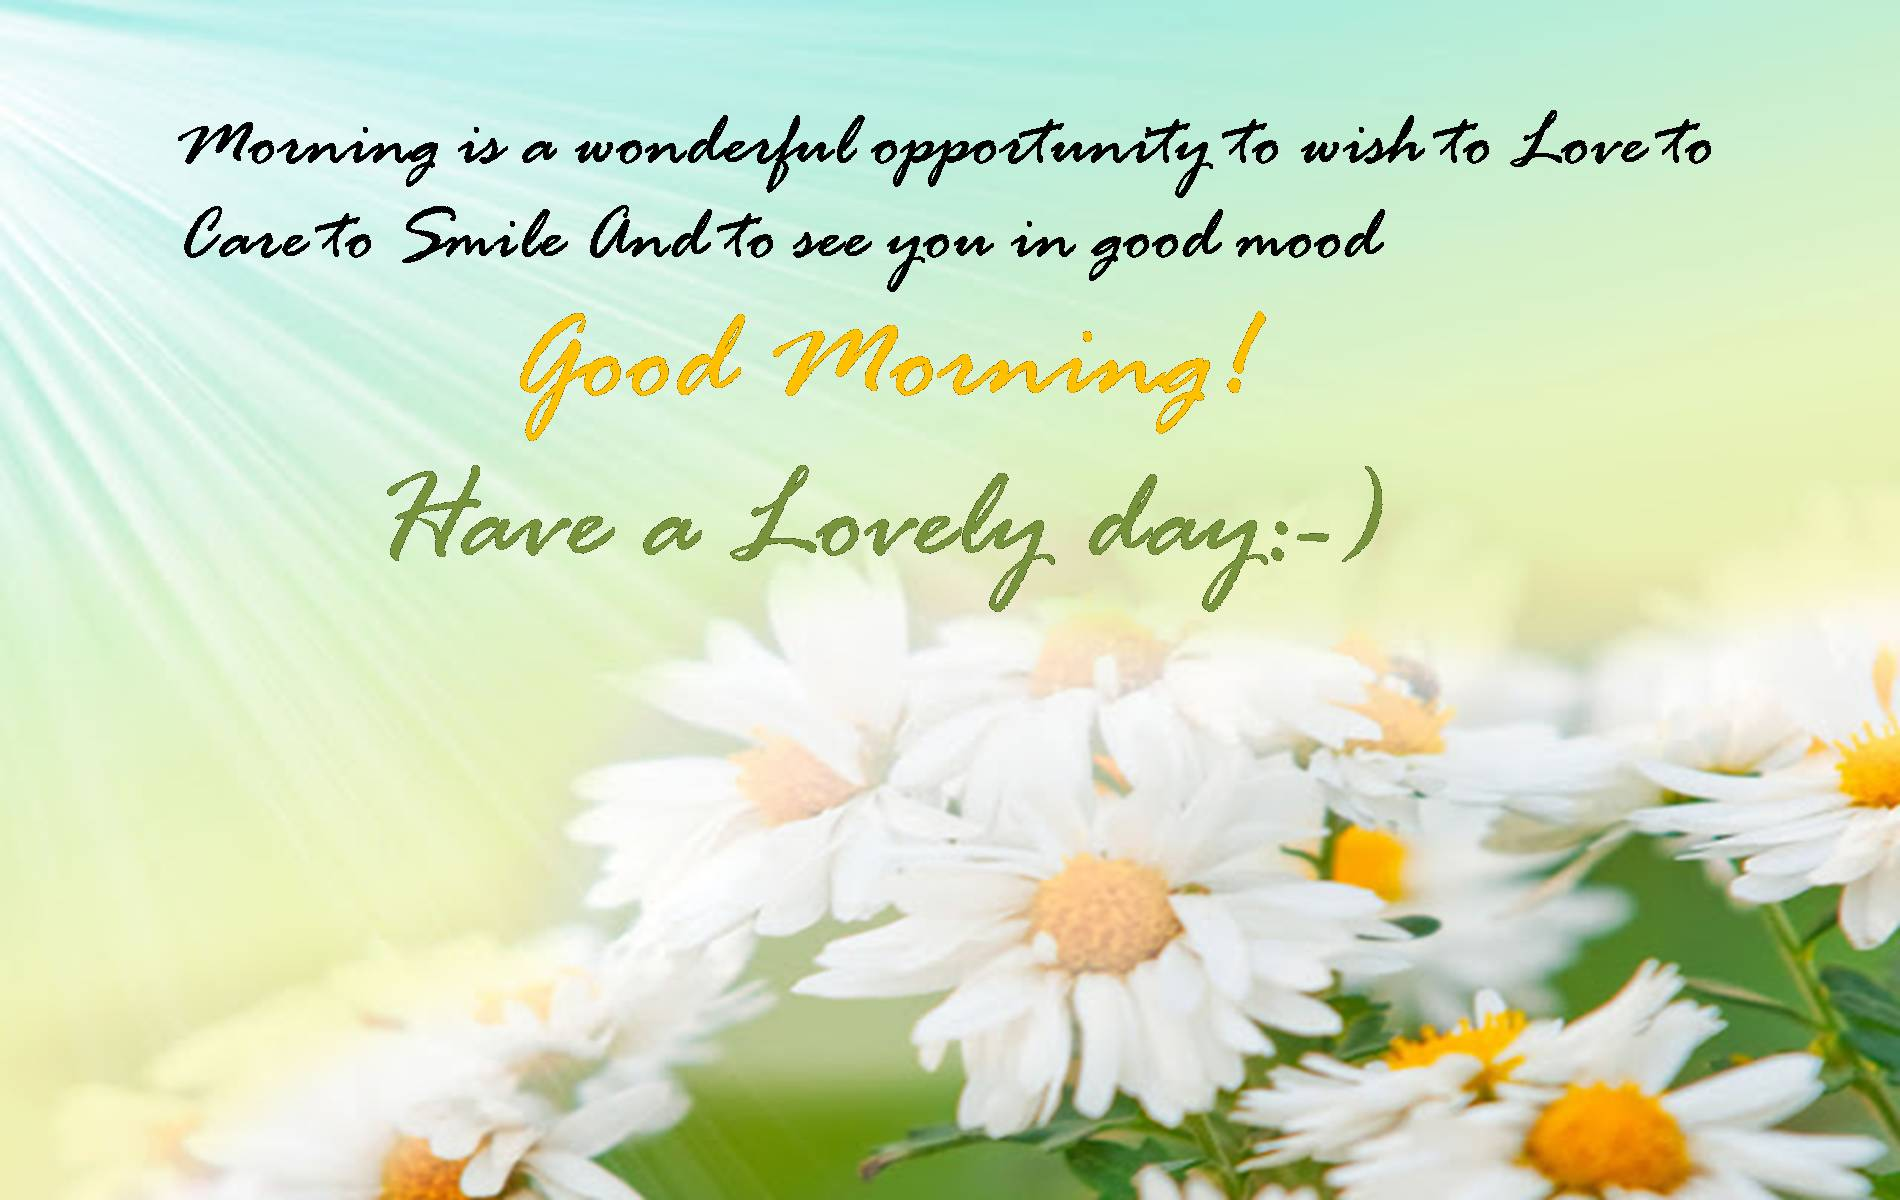 Love Good Morning Image Wallpaper : Good morning Happy Wishes